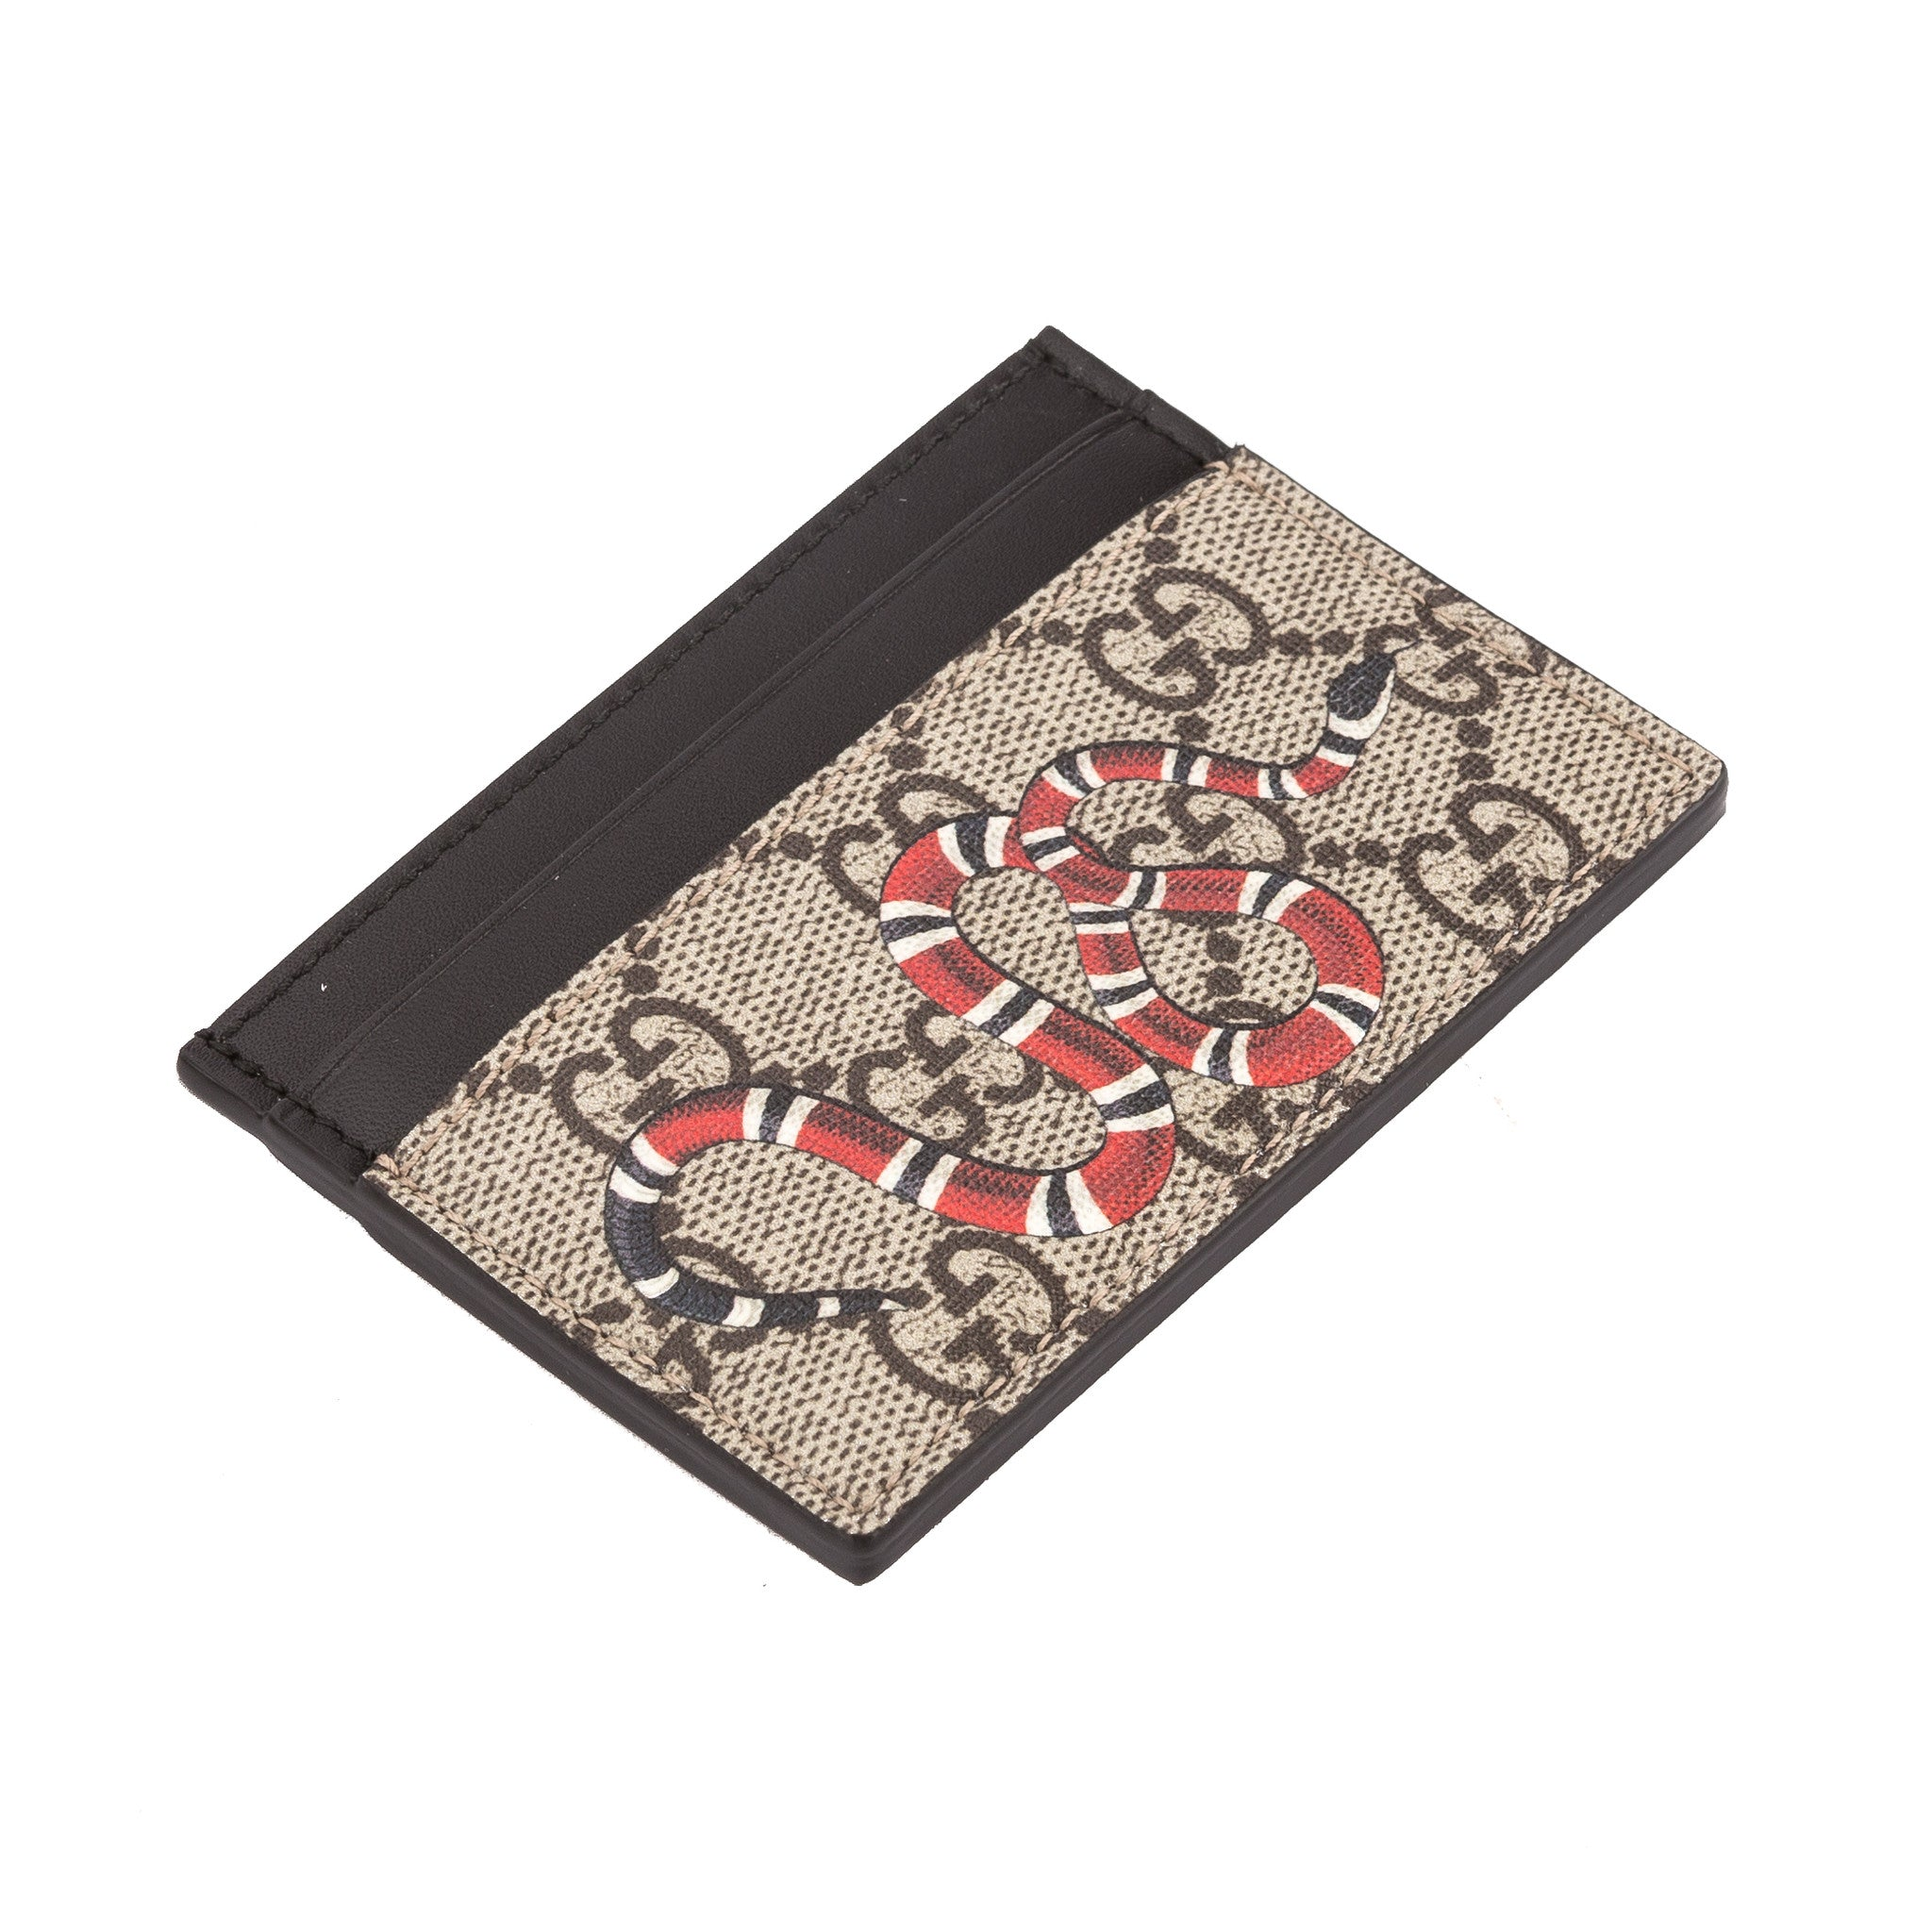 3bee9272ccfb Gucci GG Supreme Canvas Snake Print Card Case (New with Tags) - 3452022 |  LuxeDH